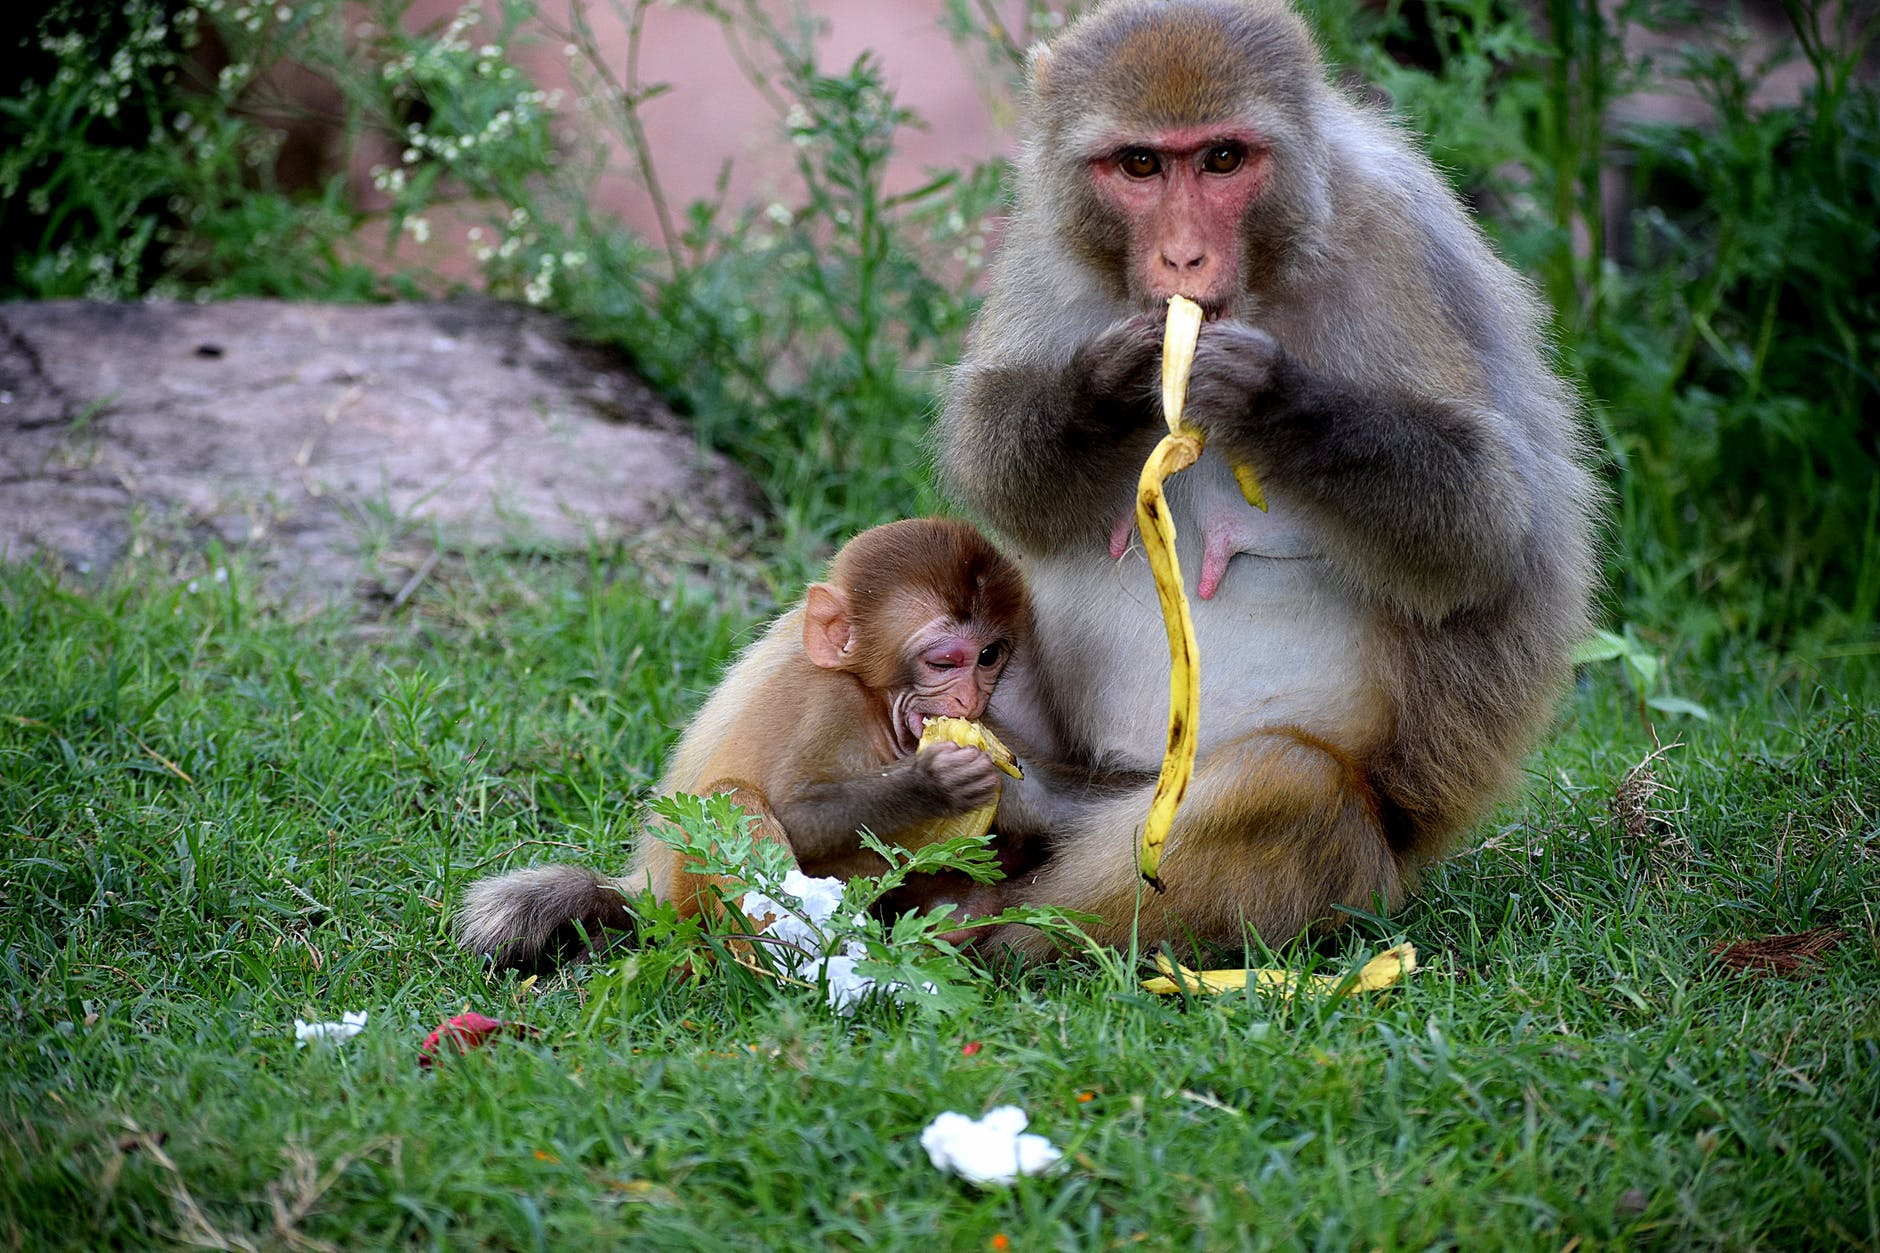 monkey eating bananas